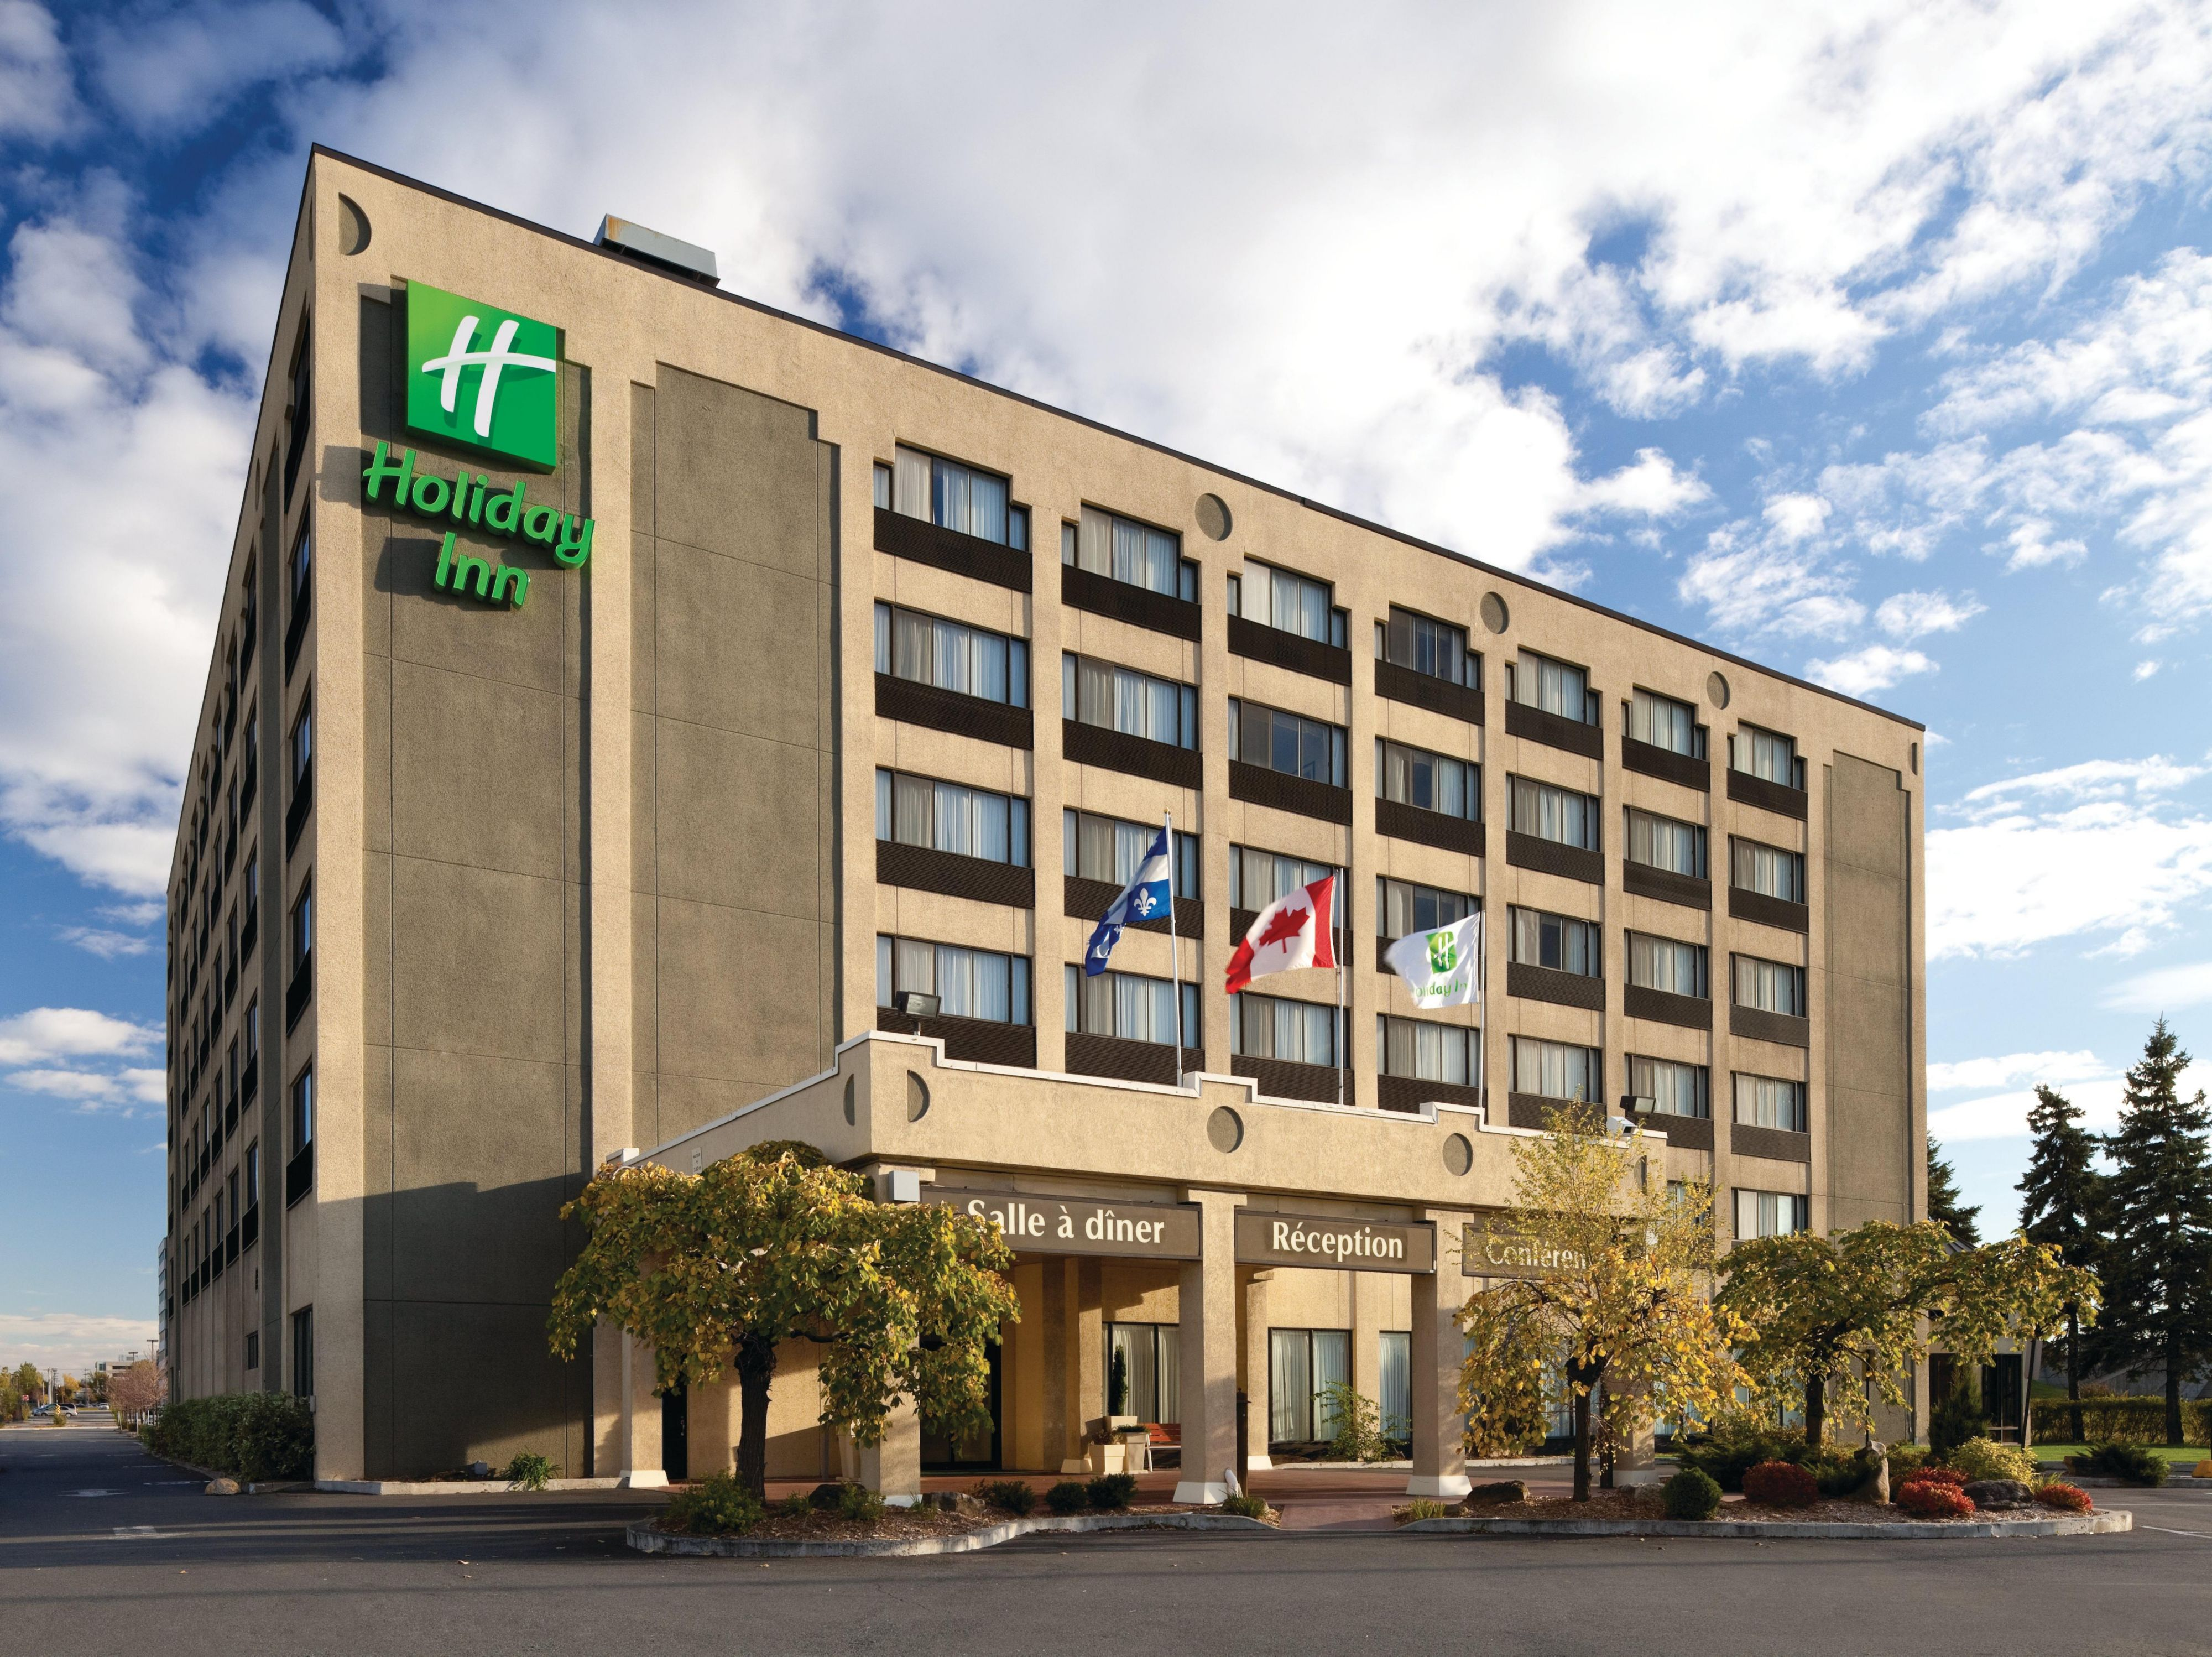 We look forward to your visit to the Holiday Inn Longueuil!